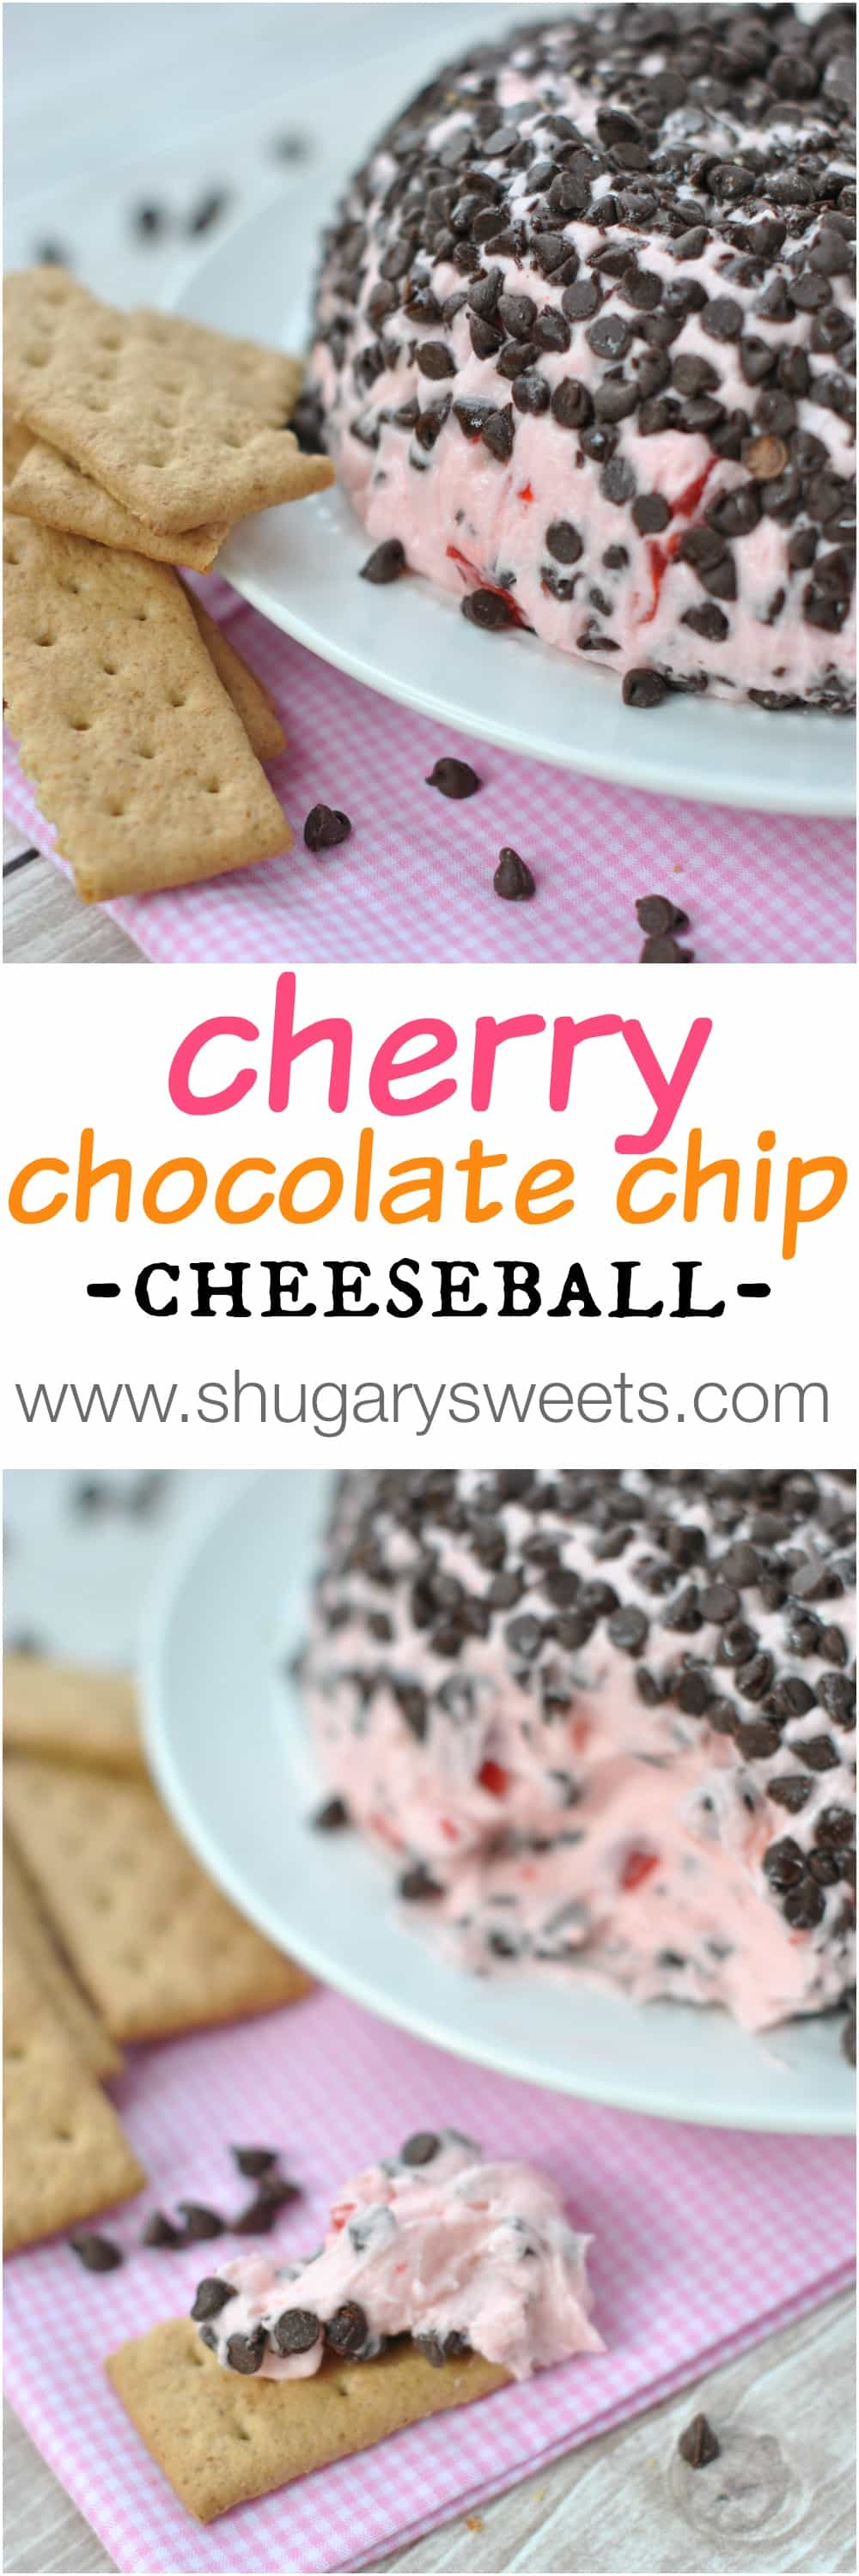 Cherry Chocolate Chip Cheeseball - Shugary Sweets